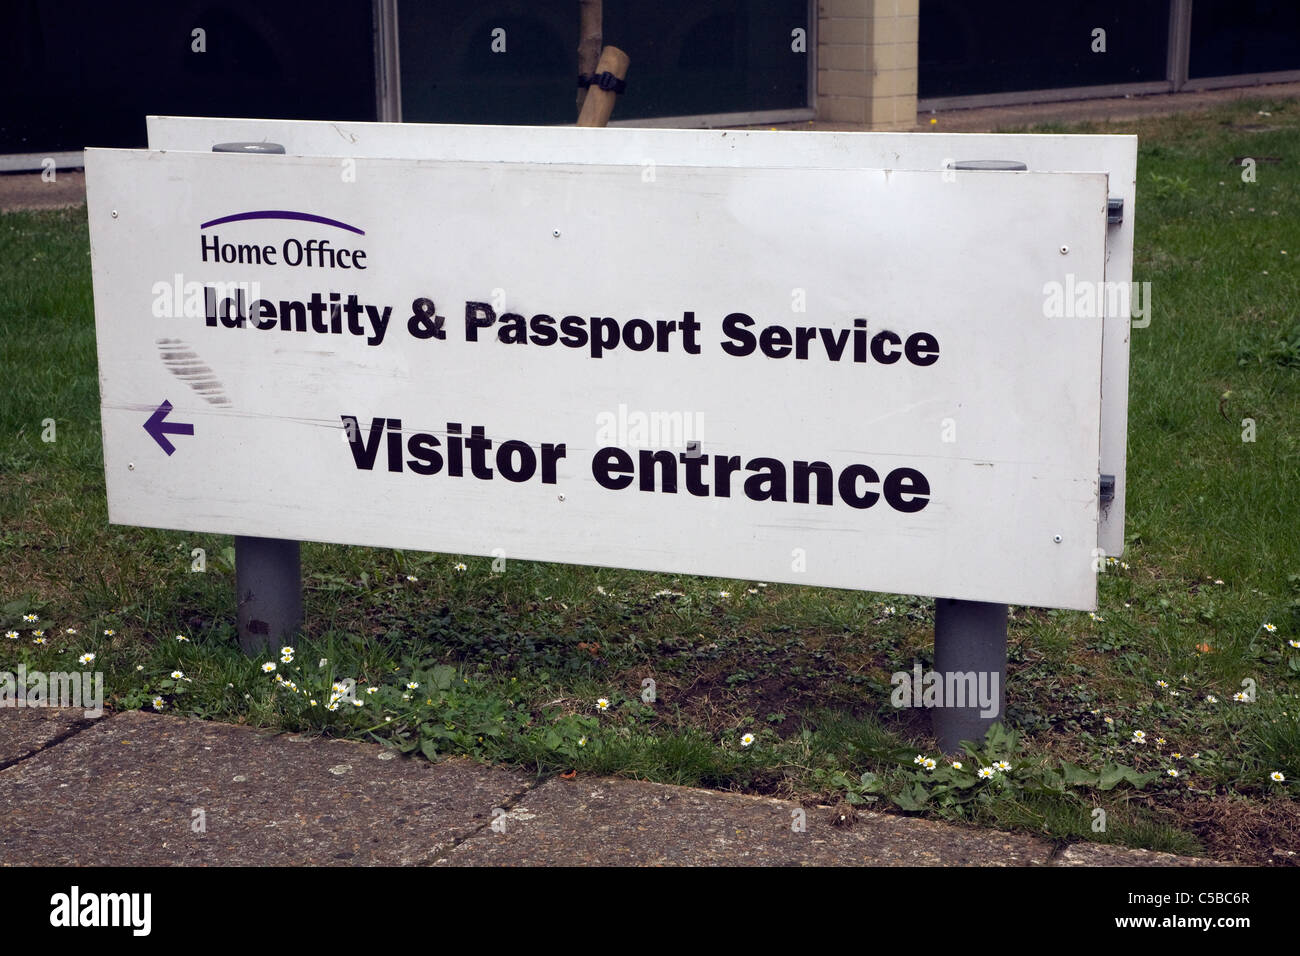 Home Office Identity and passport service visitor entrance sign, Norwich, England - Stock Image